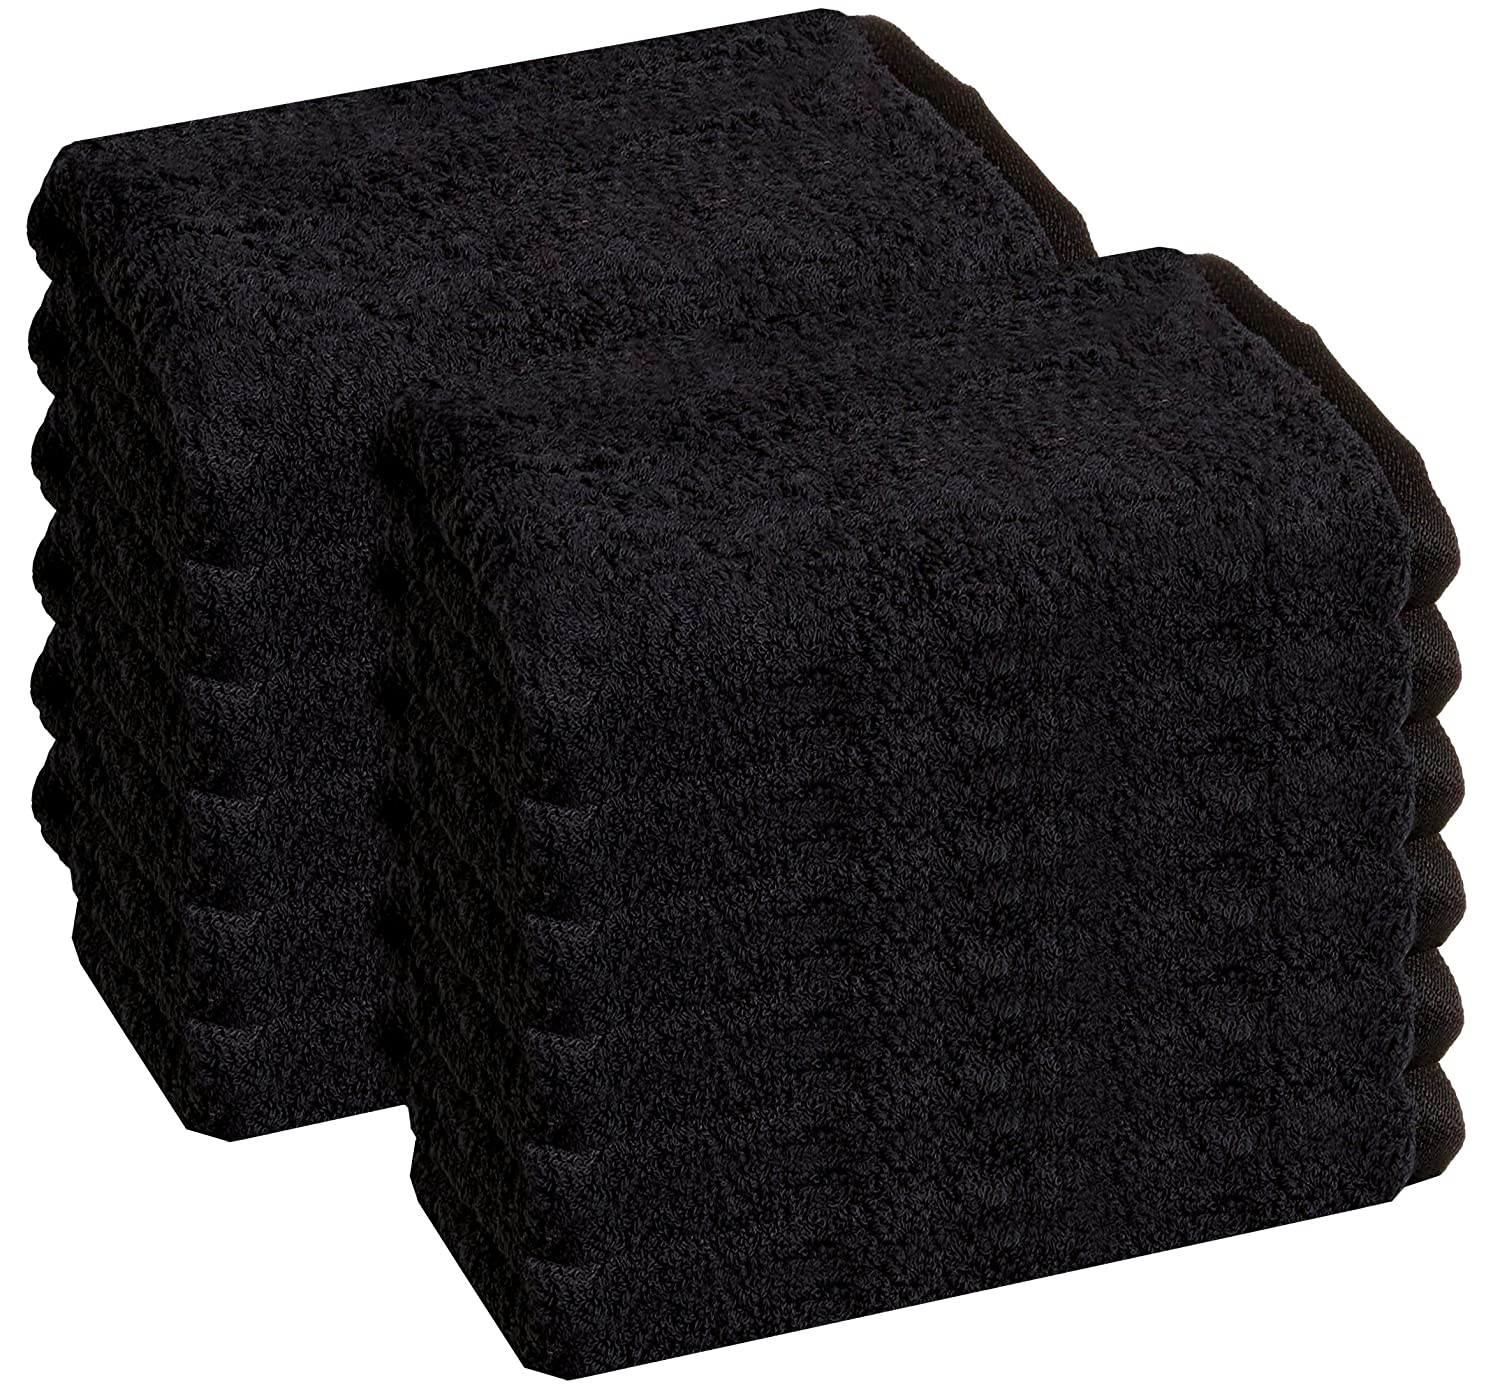 Gym Towel Hand Towel - Ringspun Cotton - 16x26 inches Maximum Softness and Absorbency 12-Pack, Black Cotton Salon Towels Easy Care